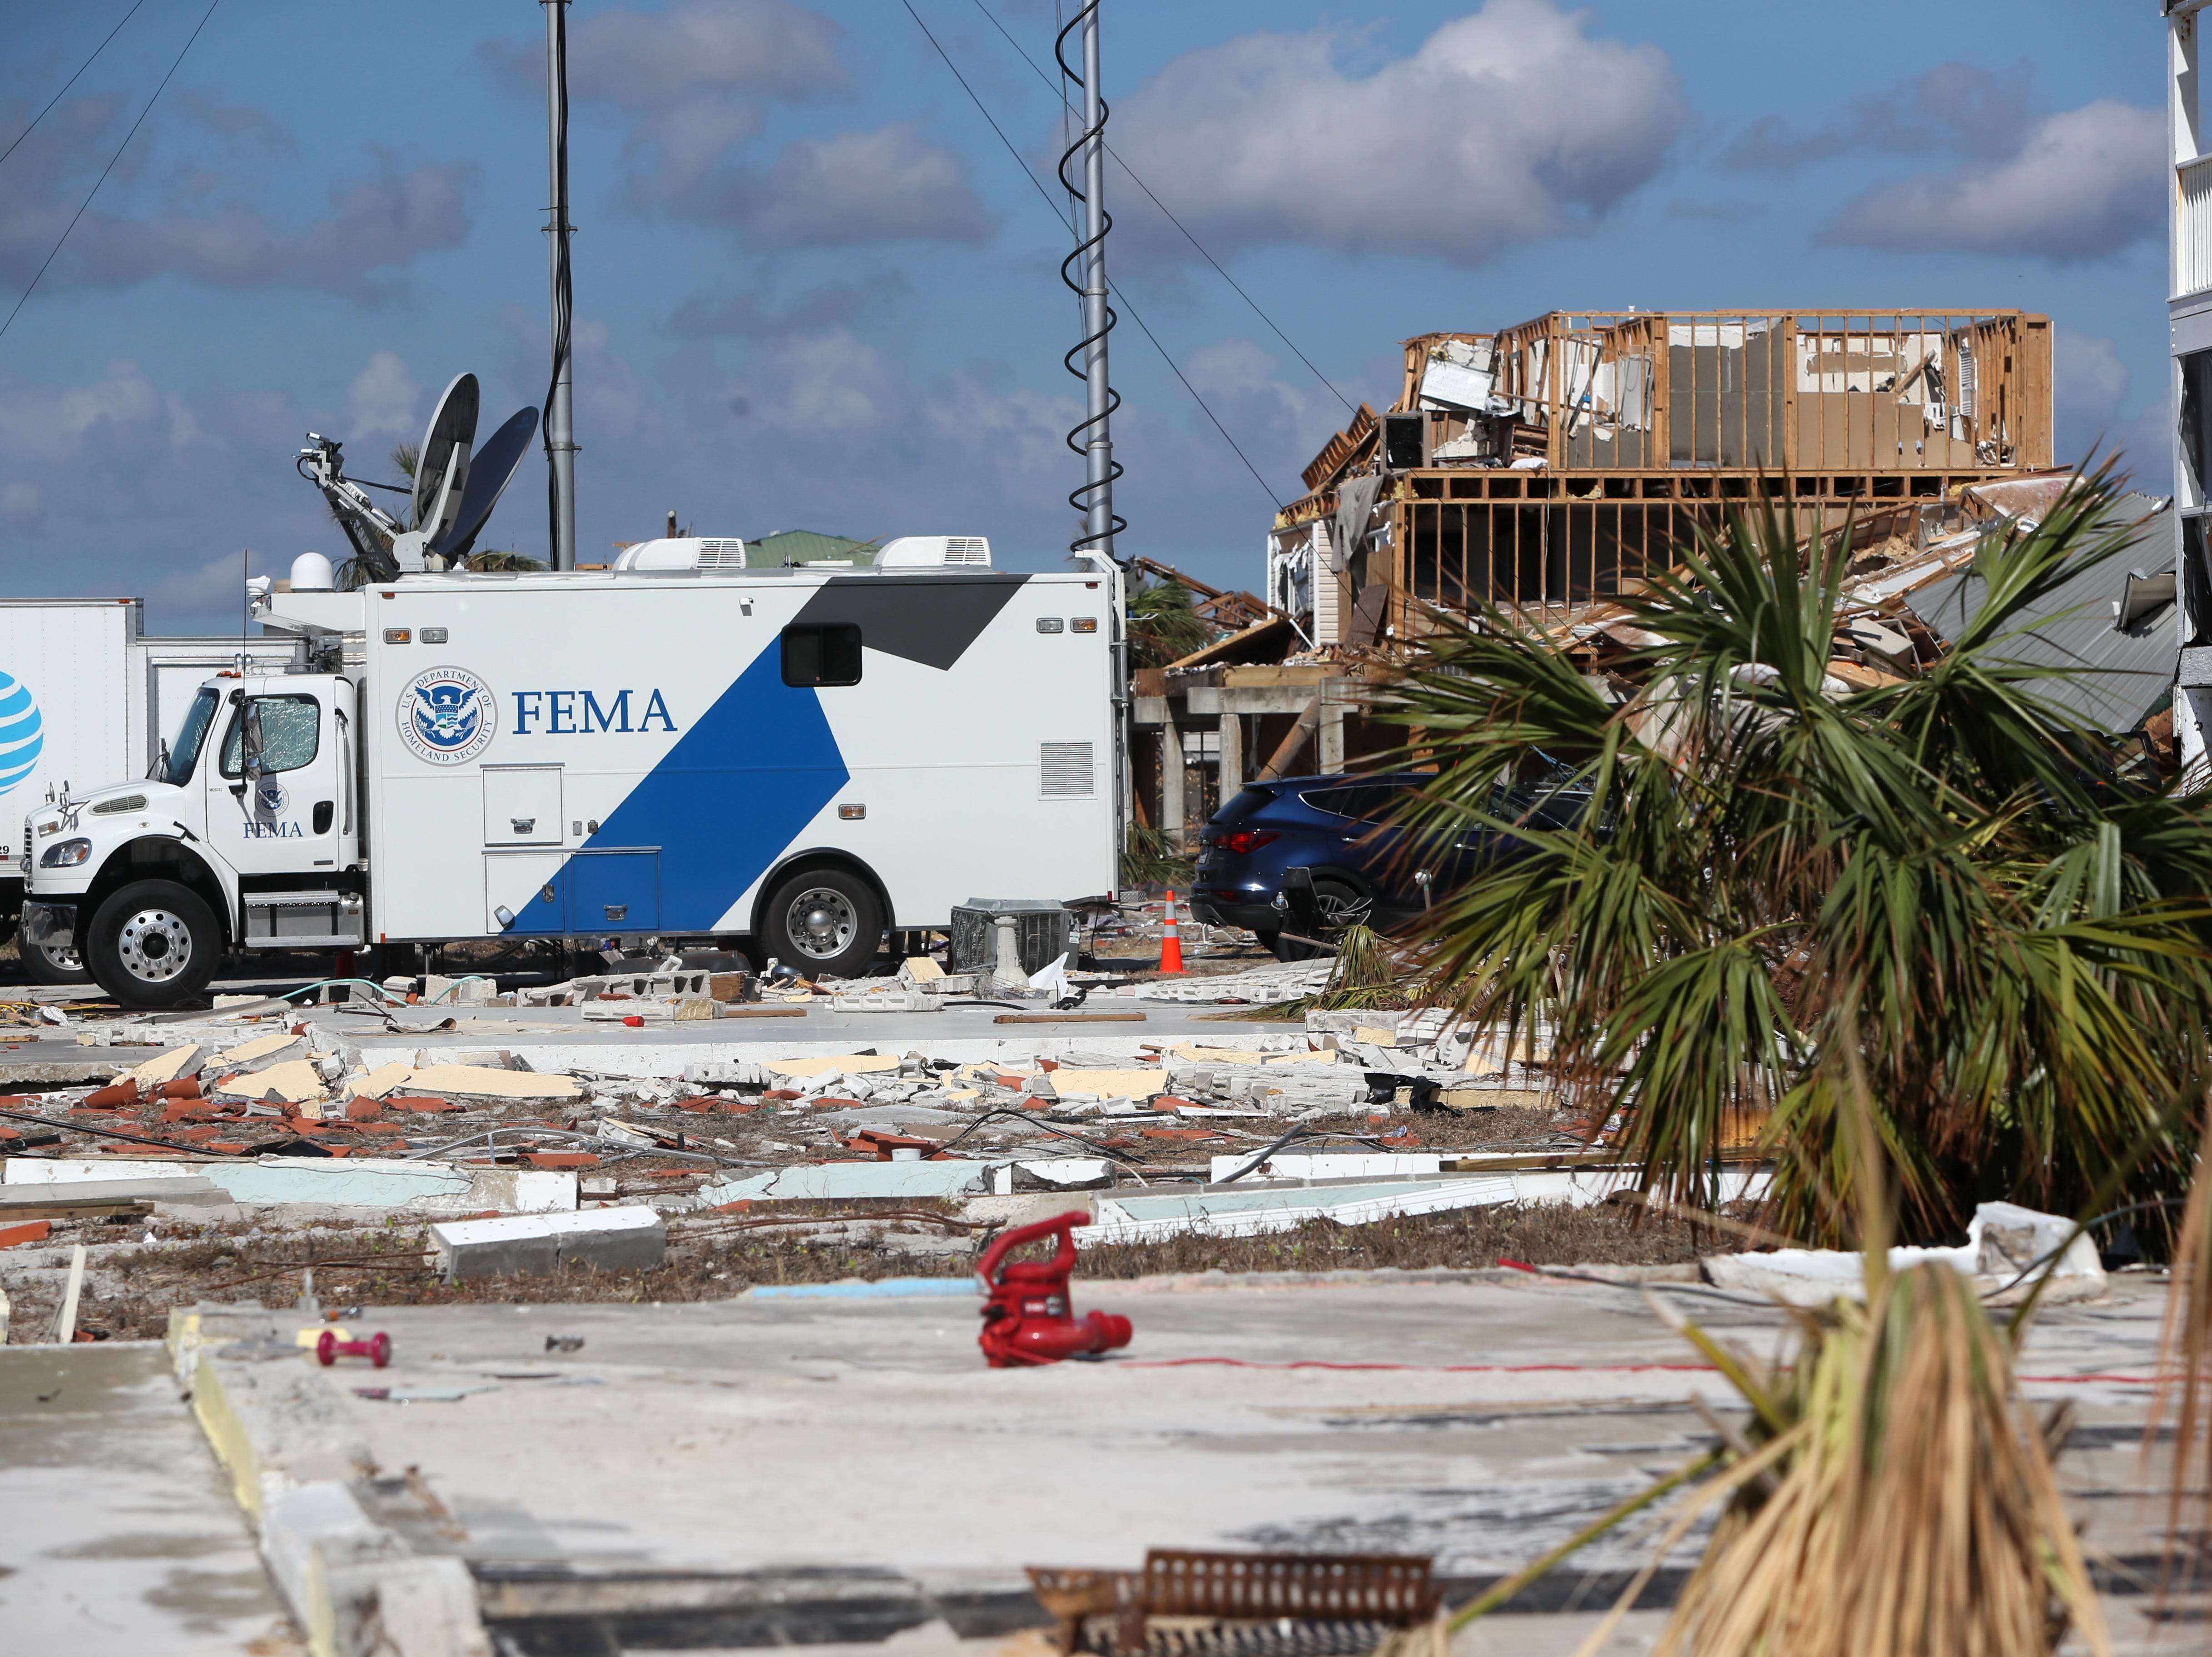 FEMA has set up multiple mobile command units in Mexico Beach on Wednesday, Oct. 17, 2018, one week after Hurricane Michael ripped through the coastal Florida town.